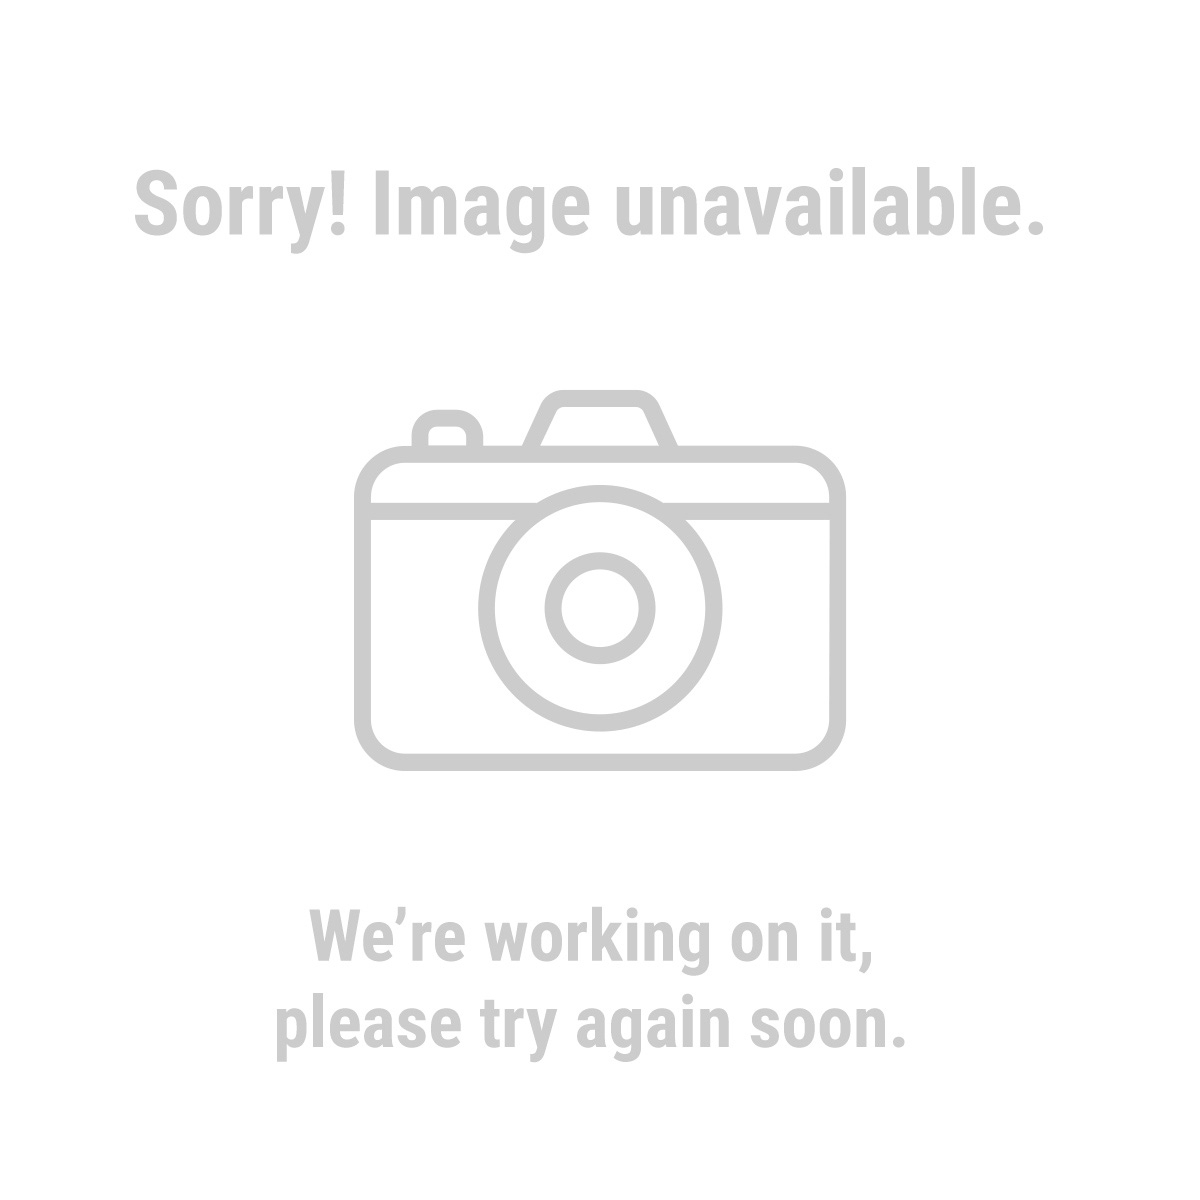 U.S. General 92171 Mechanic's Gloves, Extra Large